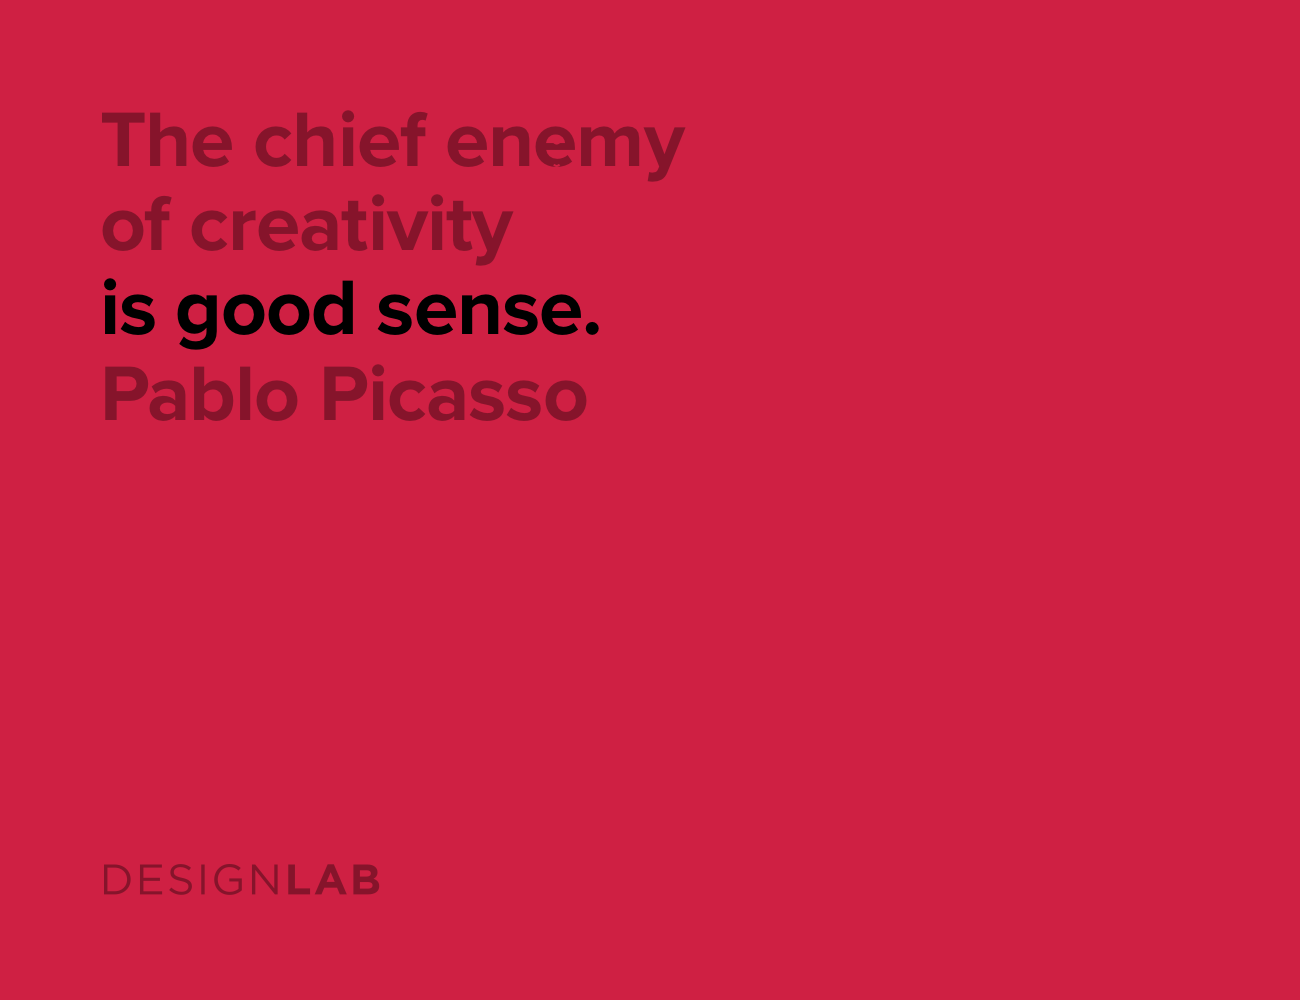 The chief enemy of creativity is good sense. Pablo Picasso